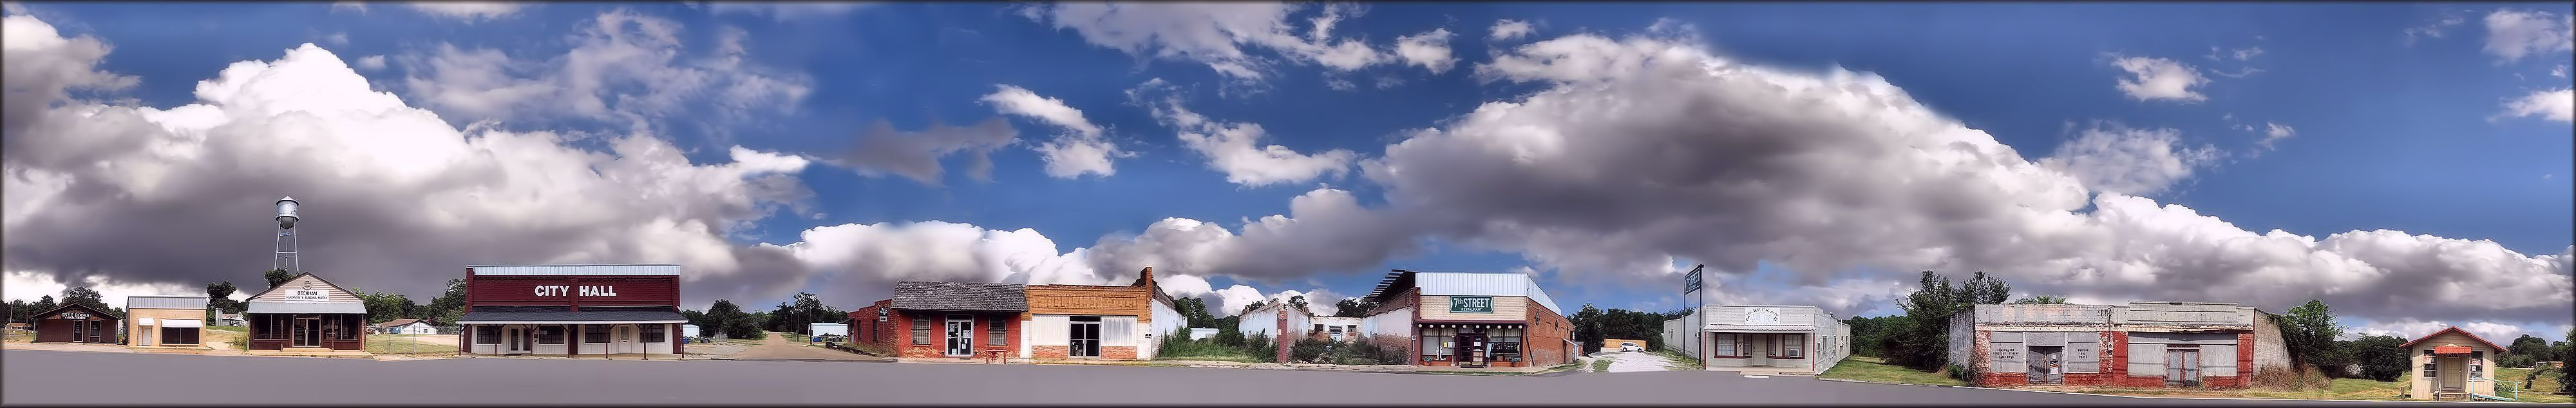 Panorama of 7th Street in Cushing, Texas